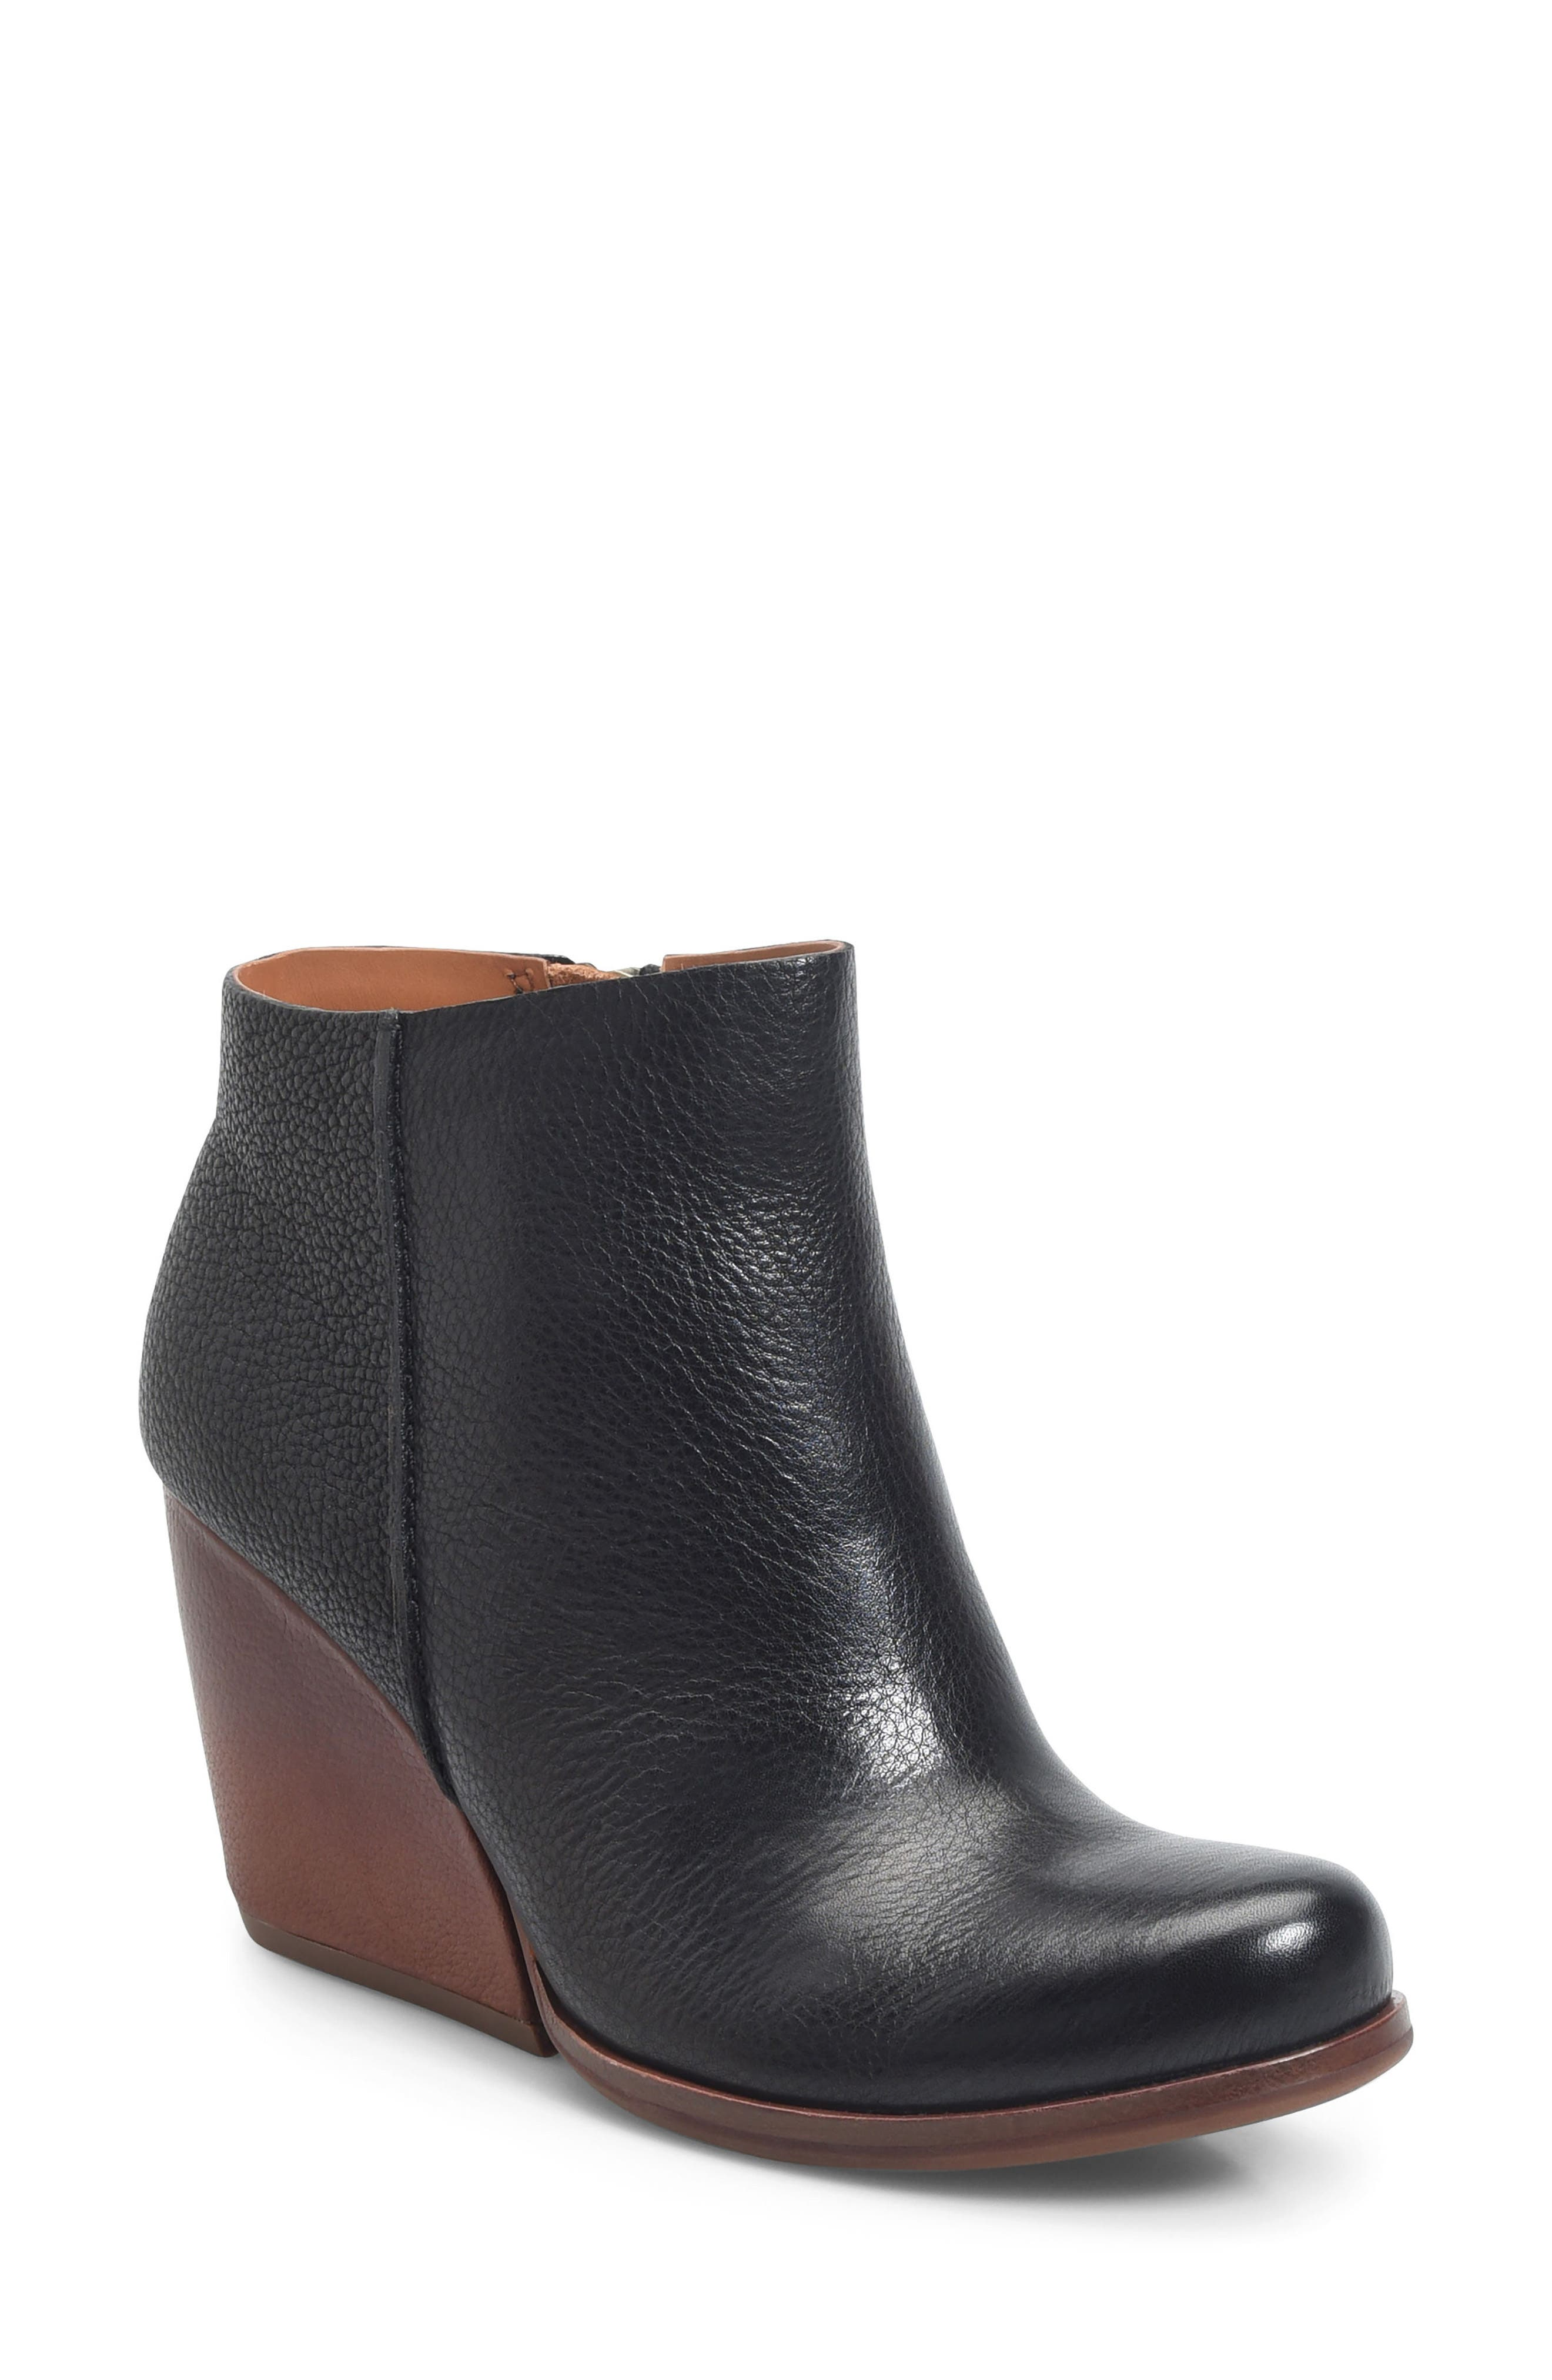 Natalya Wedge Bootie,                             Main thumbnail 1, color,                             Black Leather